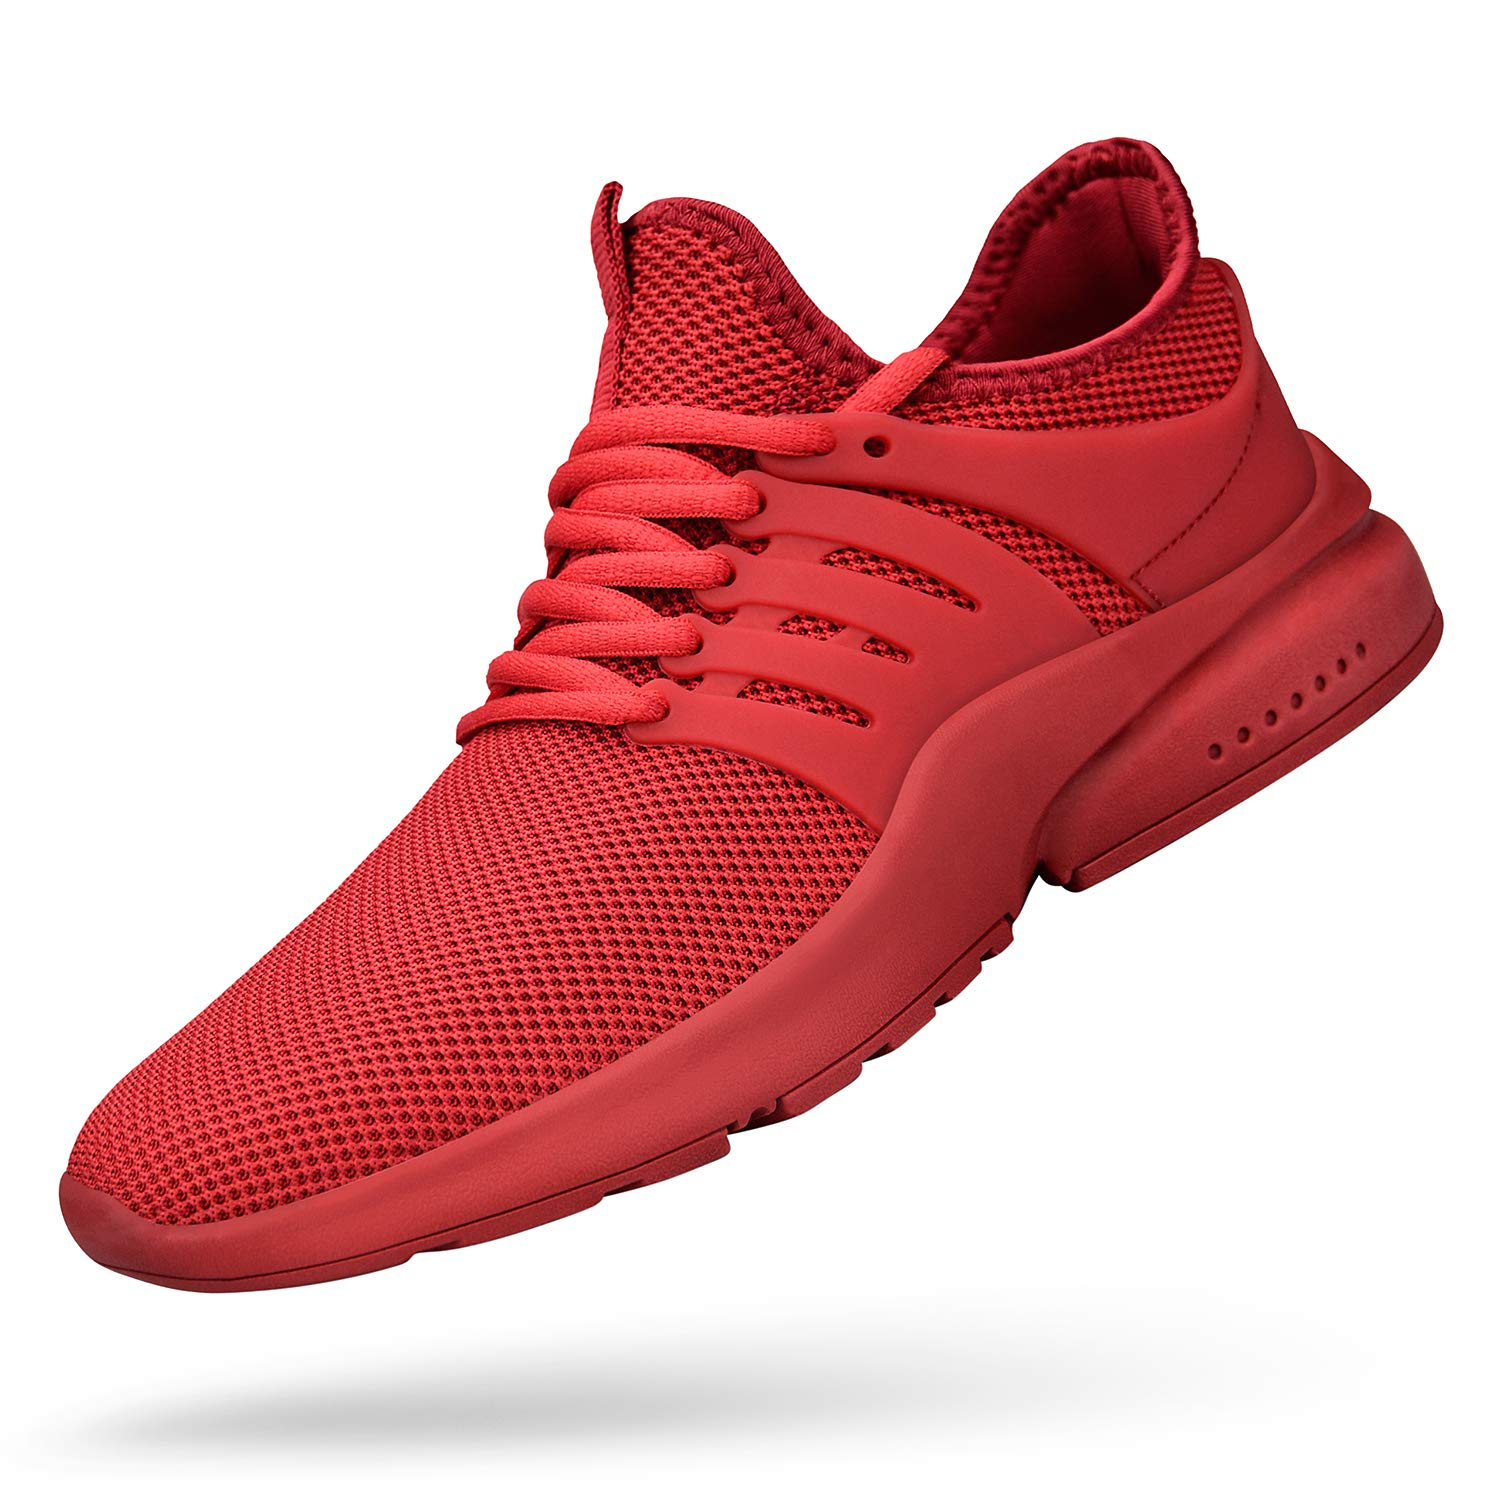 Feetmat Mens Walking Outdoor Lightweight Breathable Shoes Red Running Shoes for Boys Gym Athletics Tennis Sneakers Red 12M by Feetmat